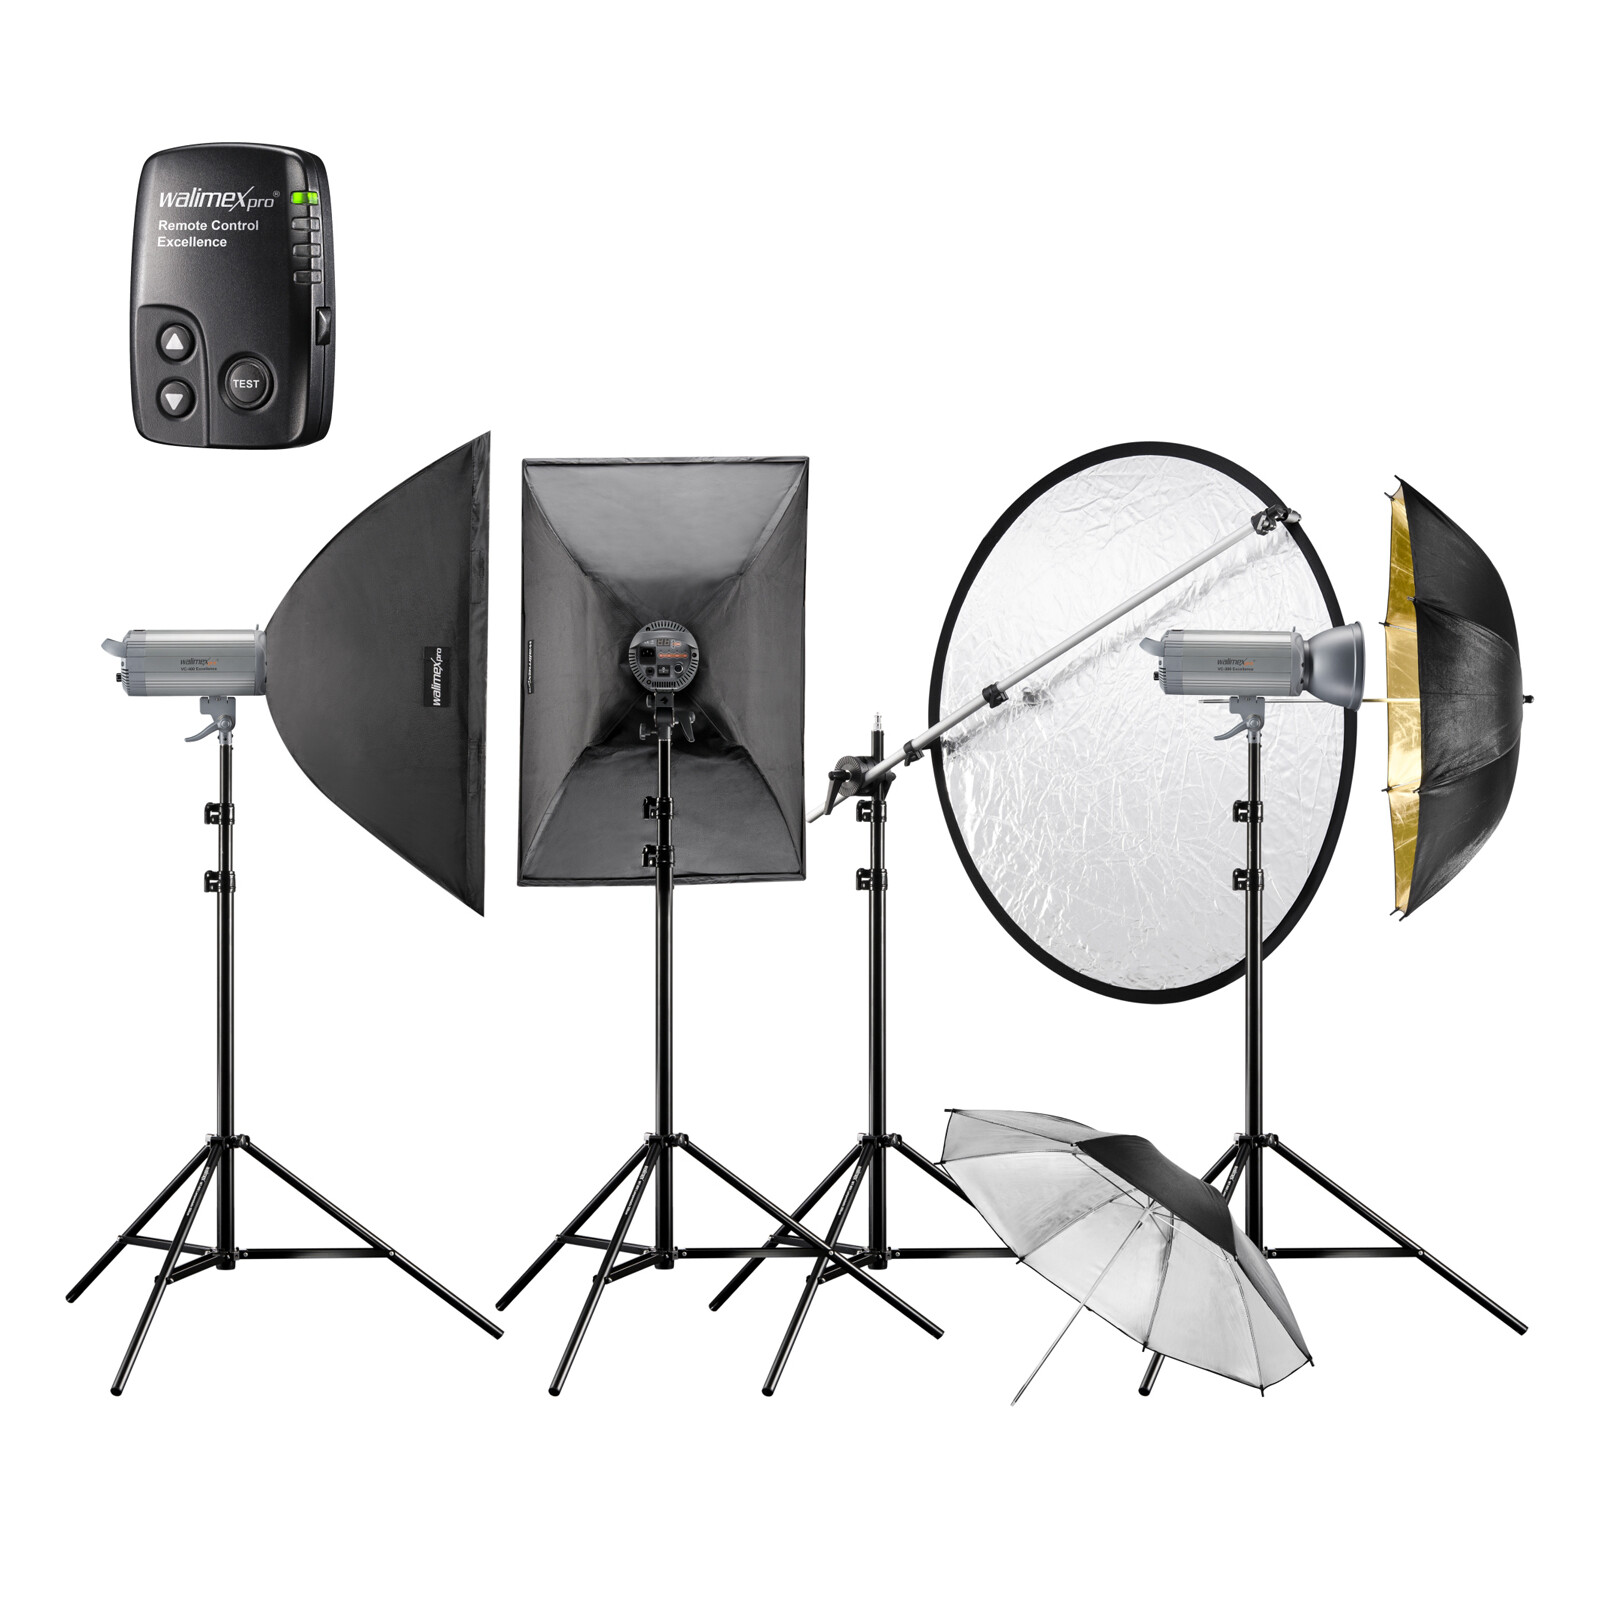 walimex pro Studioset VC-400/400/300 Excellence